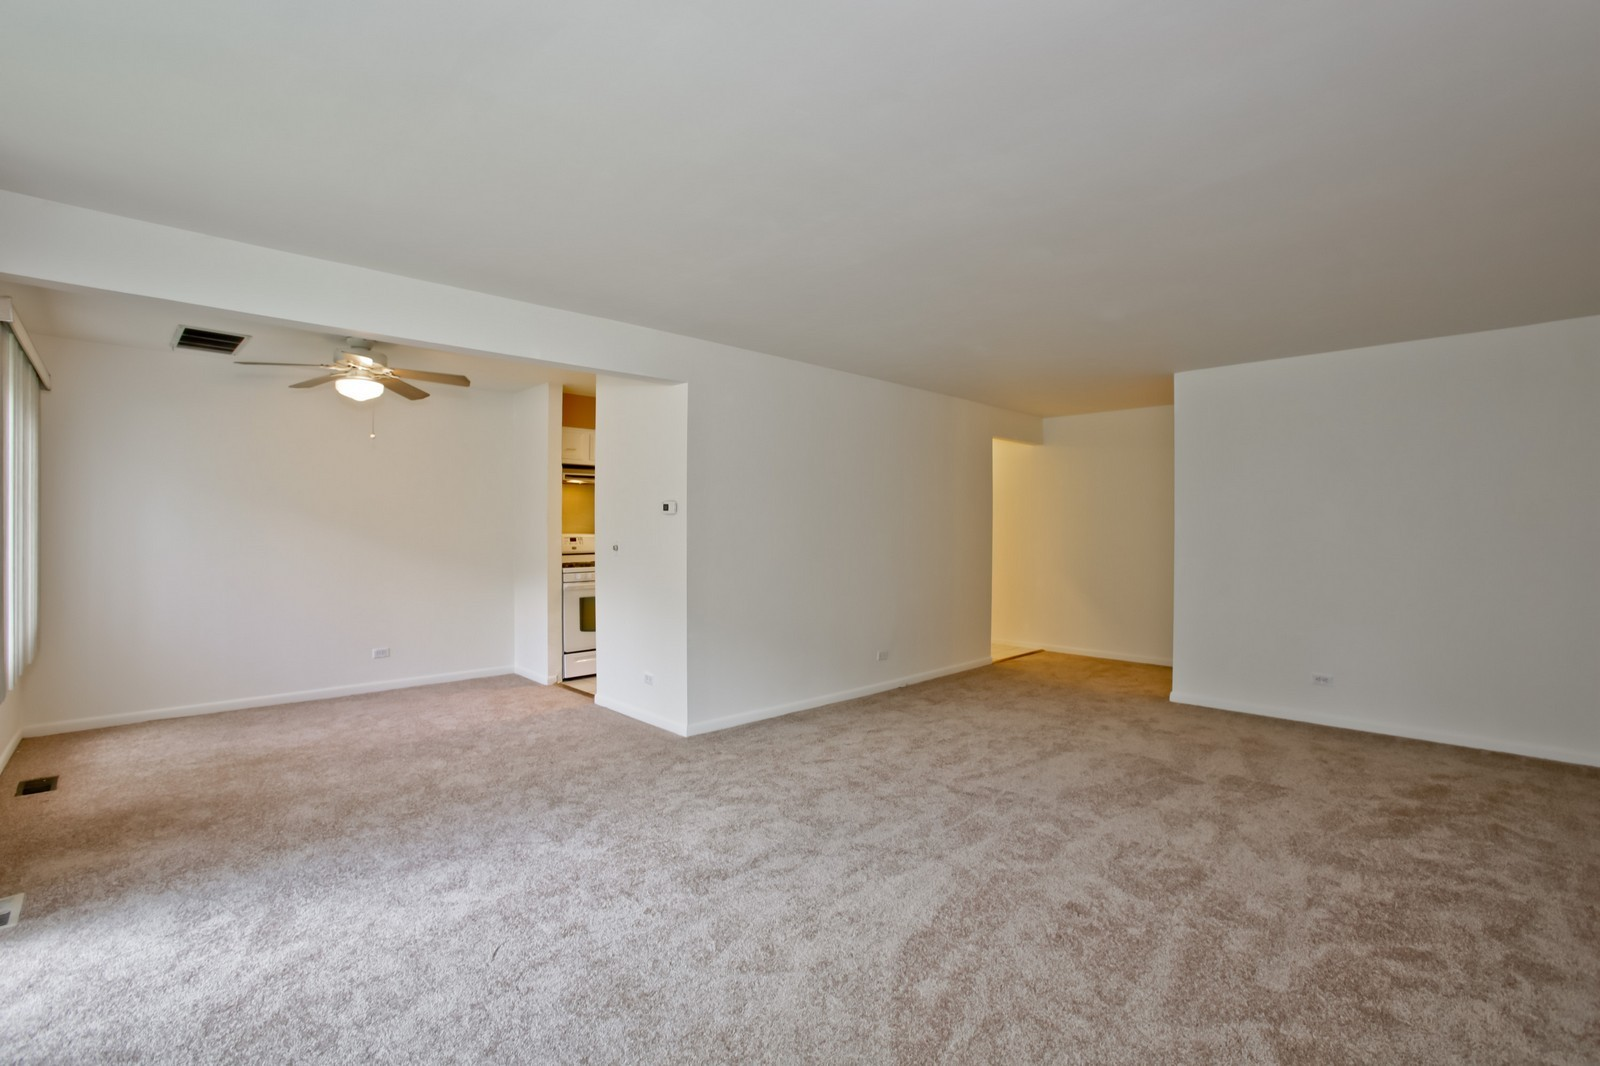 Real Estate Photography - 2811 Hobson Rd, Unit 3, Woodridge, IL, 60517 - Living Room / Dining Room